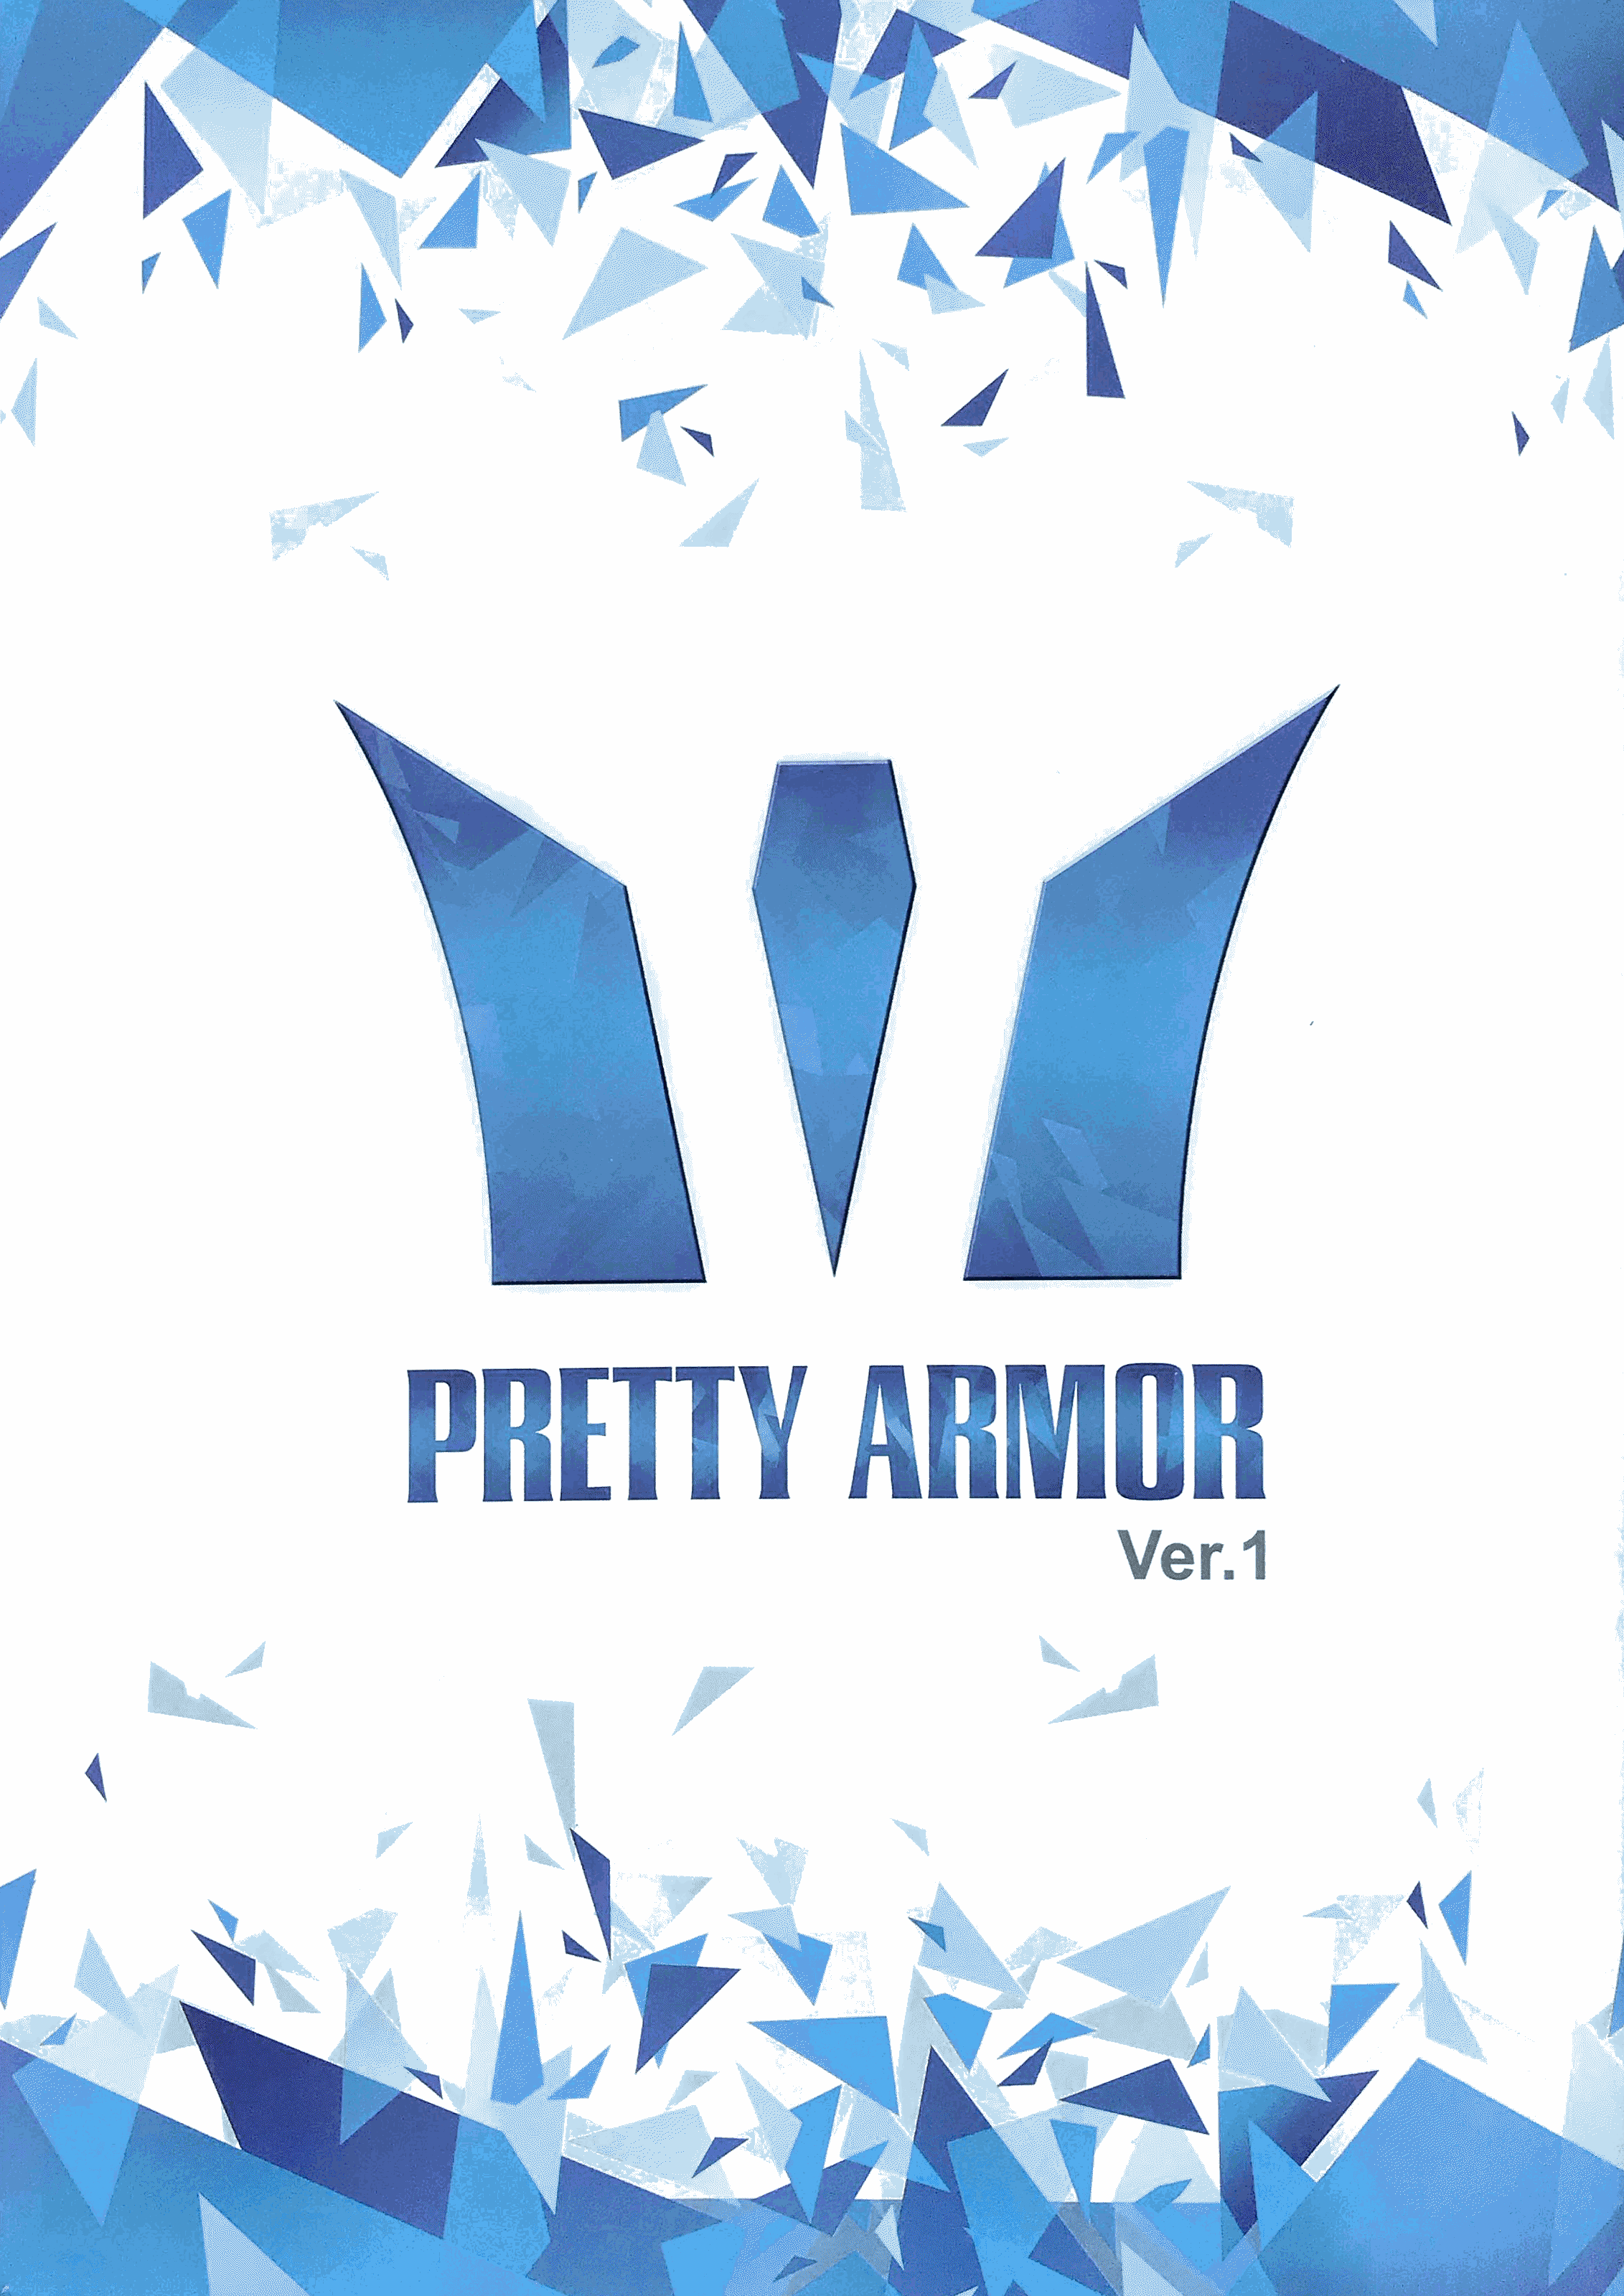 s262_pretty_armor_ver1_21.png